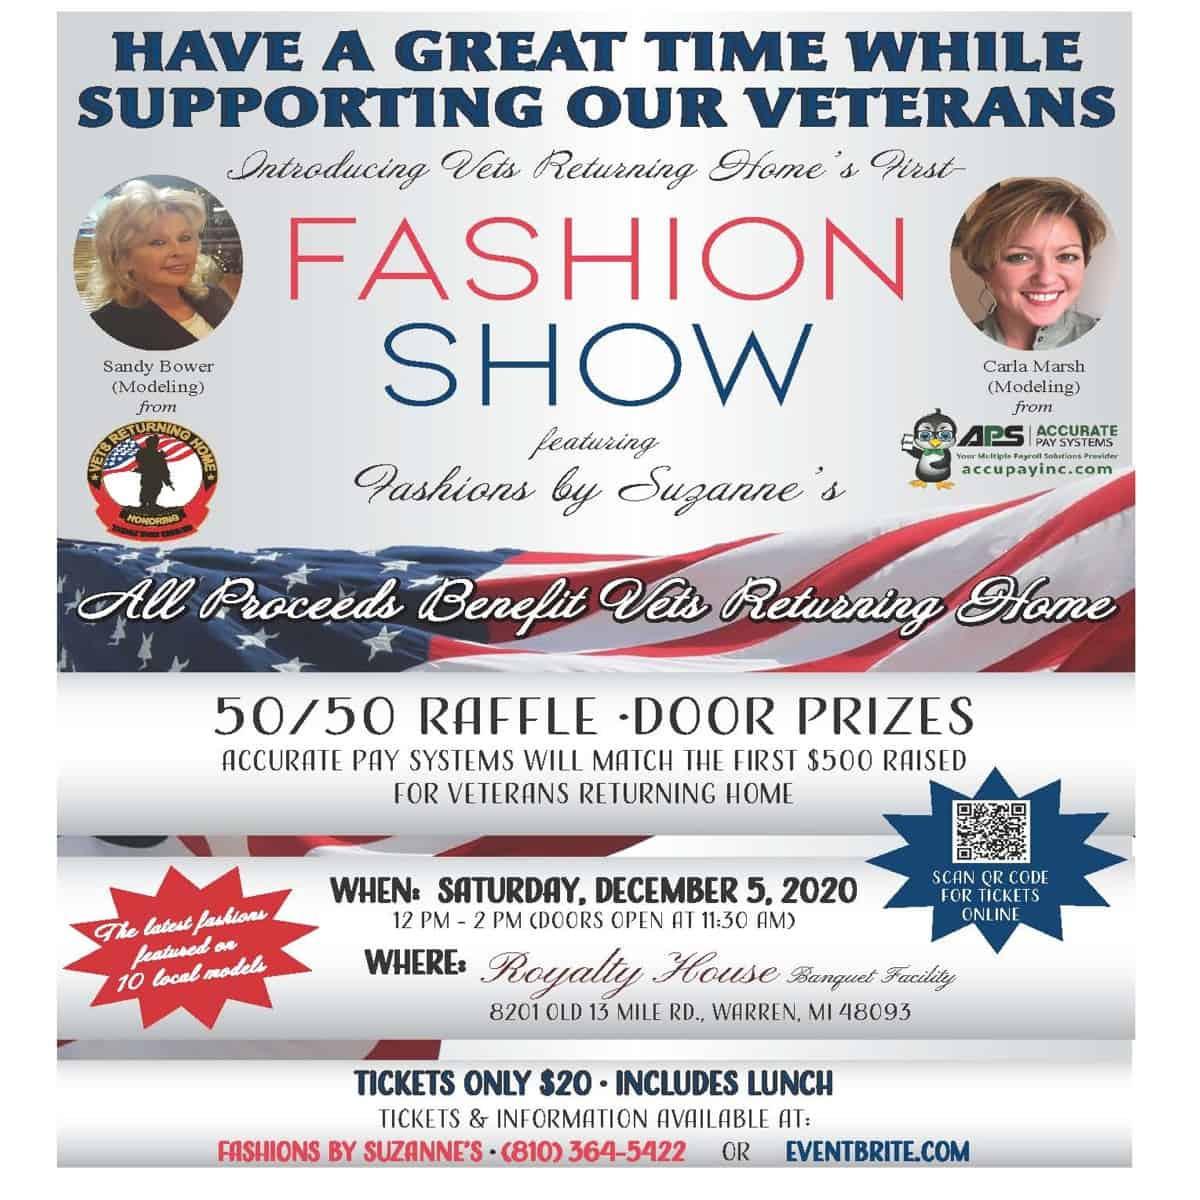 Vets Returning Home of Roseville Fashion Show and Lunch - December 5th, 2020